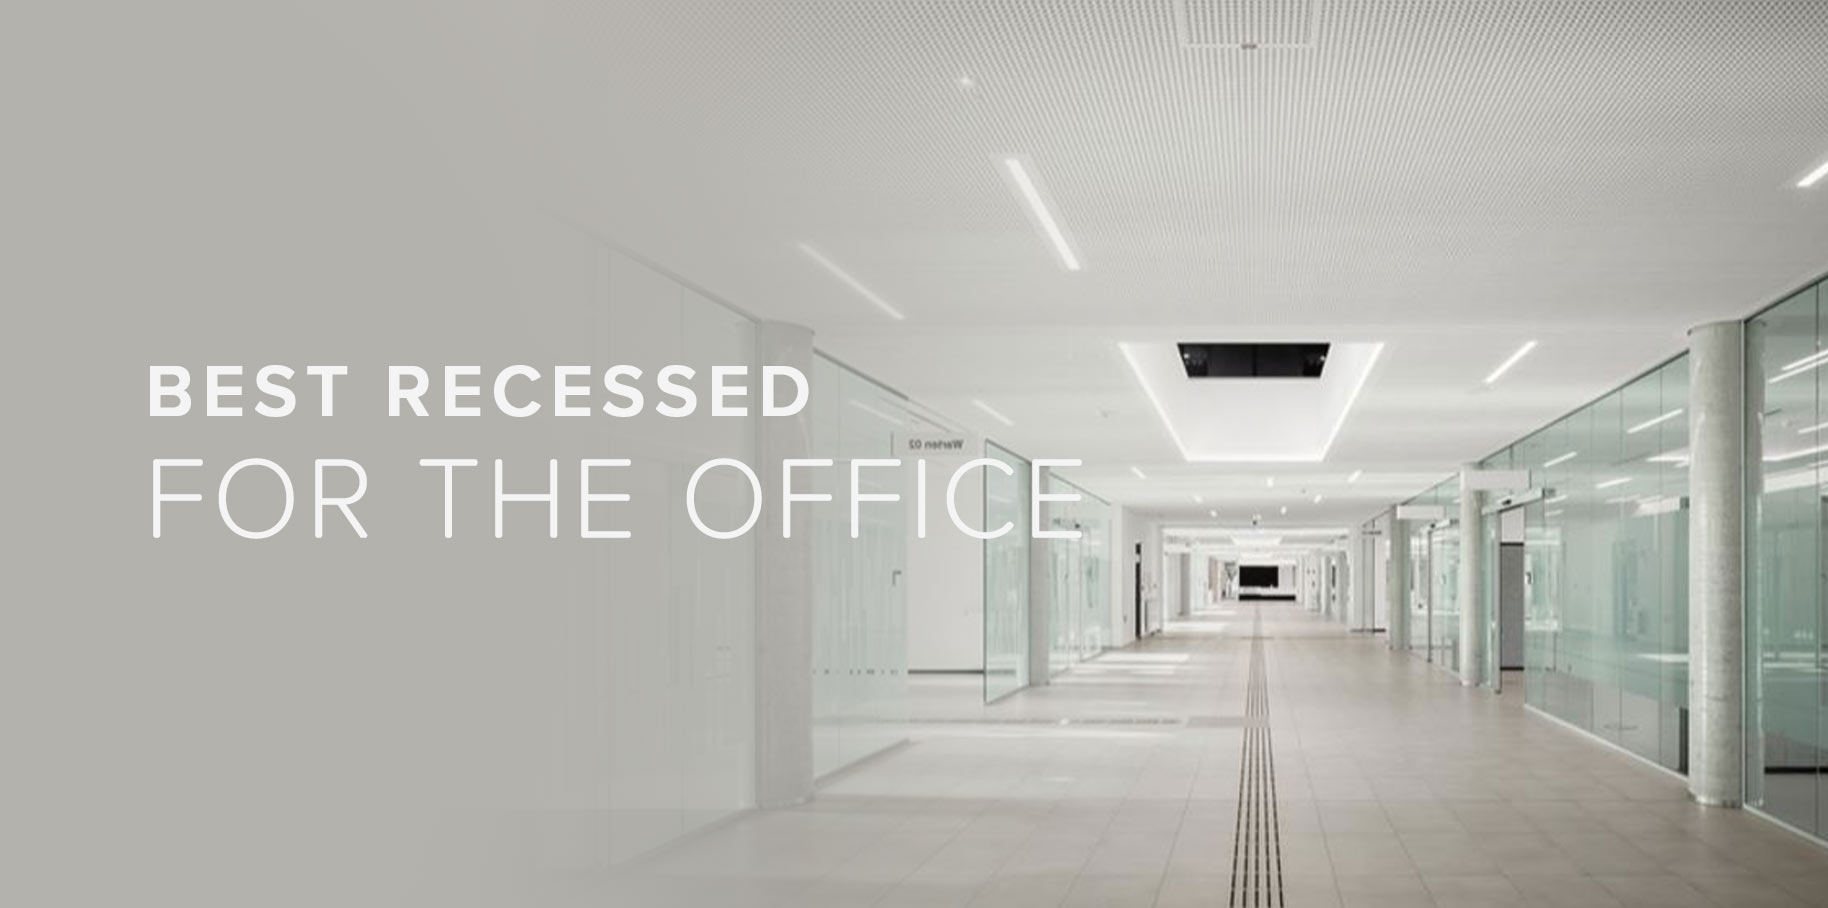 Best Recessed Lighting for the Office